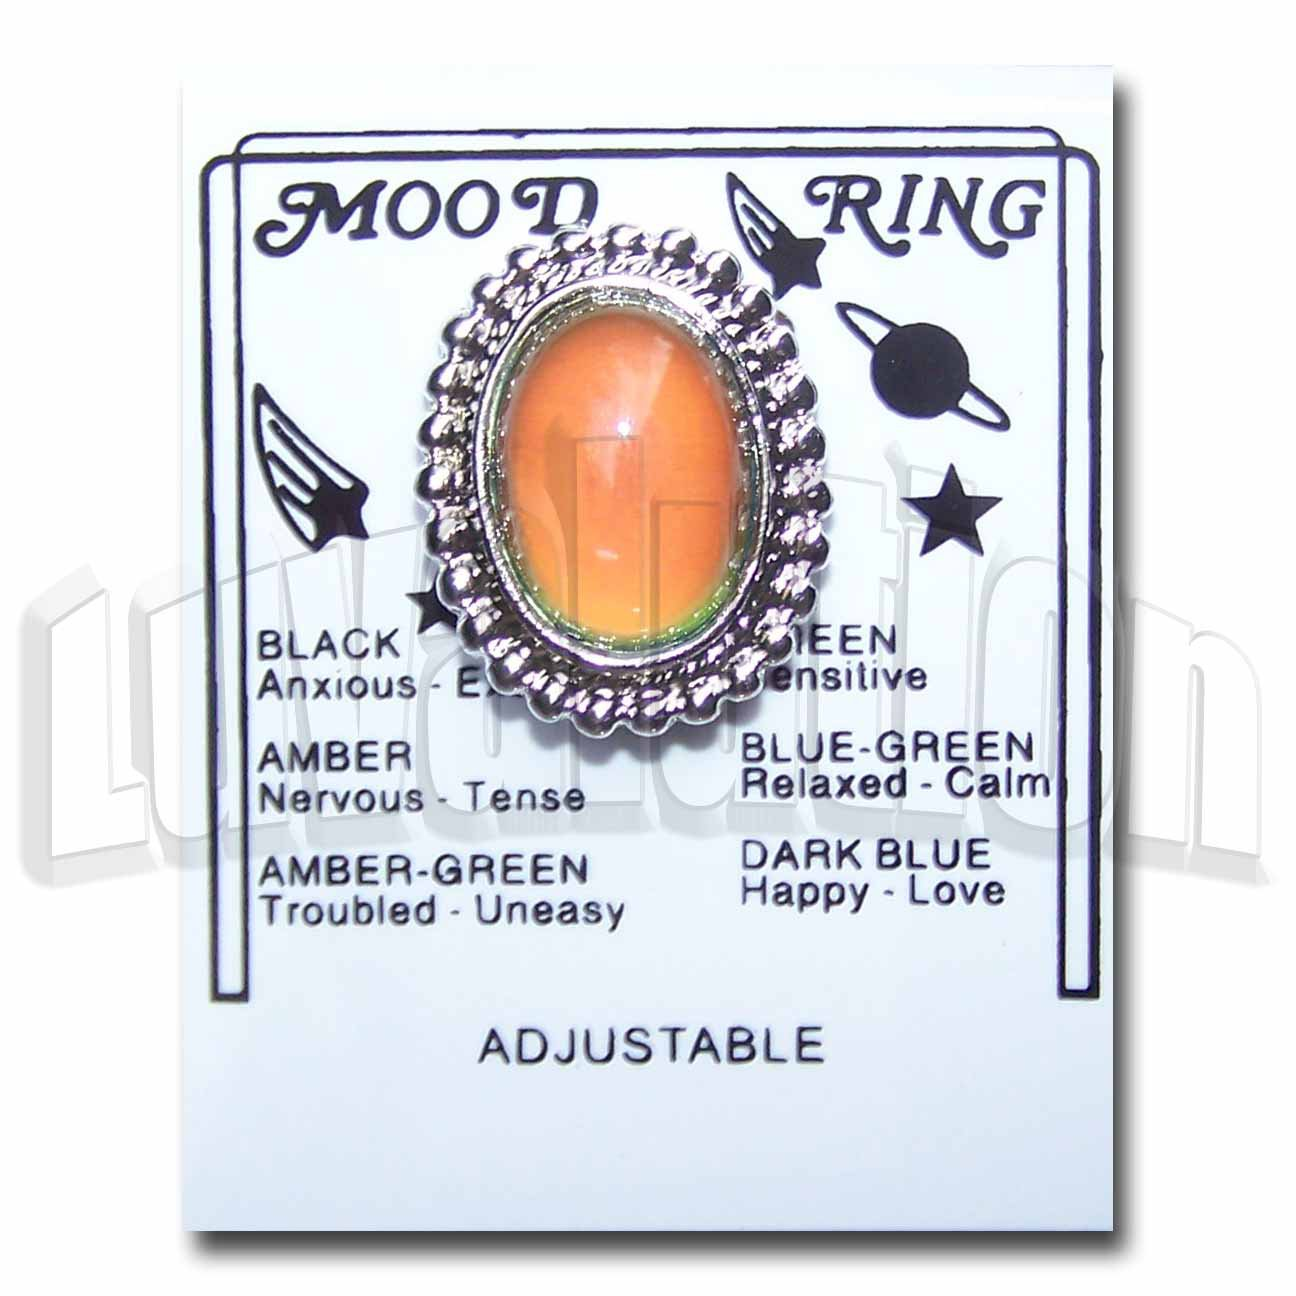 Adjustable Mood Ring Chunky Ornate Oval Cocktail Retro Hippie Chic Carded Chart